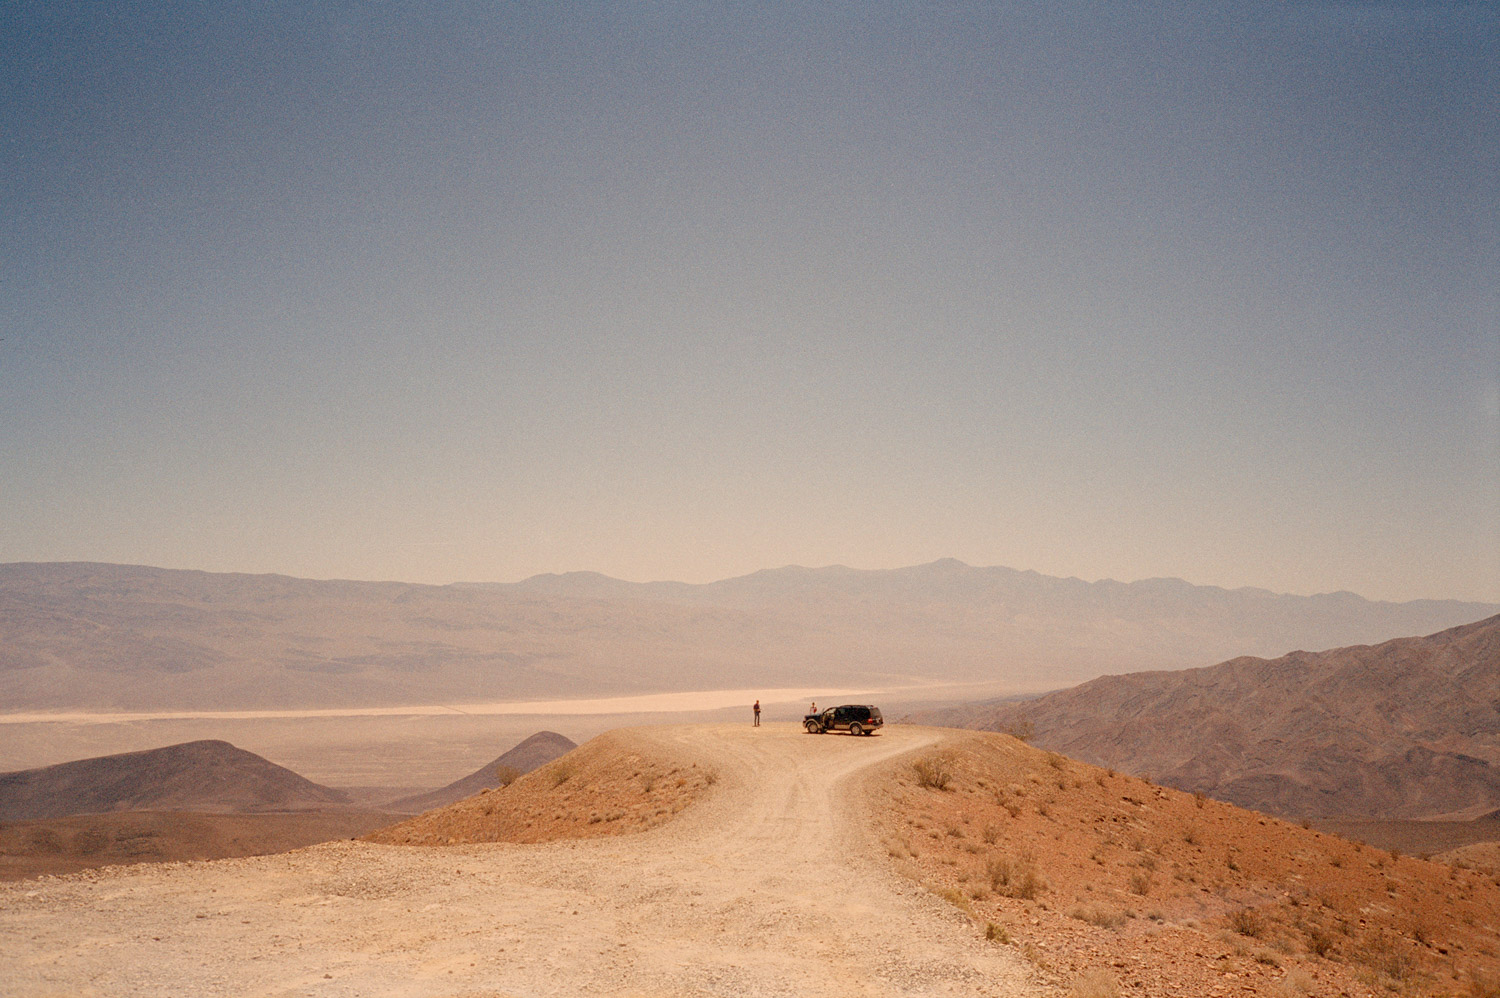 death-valley-landscape-2013.jpg